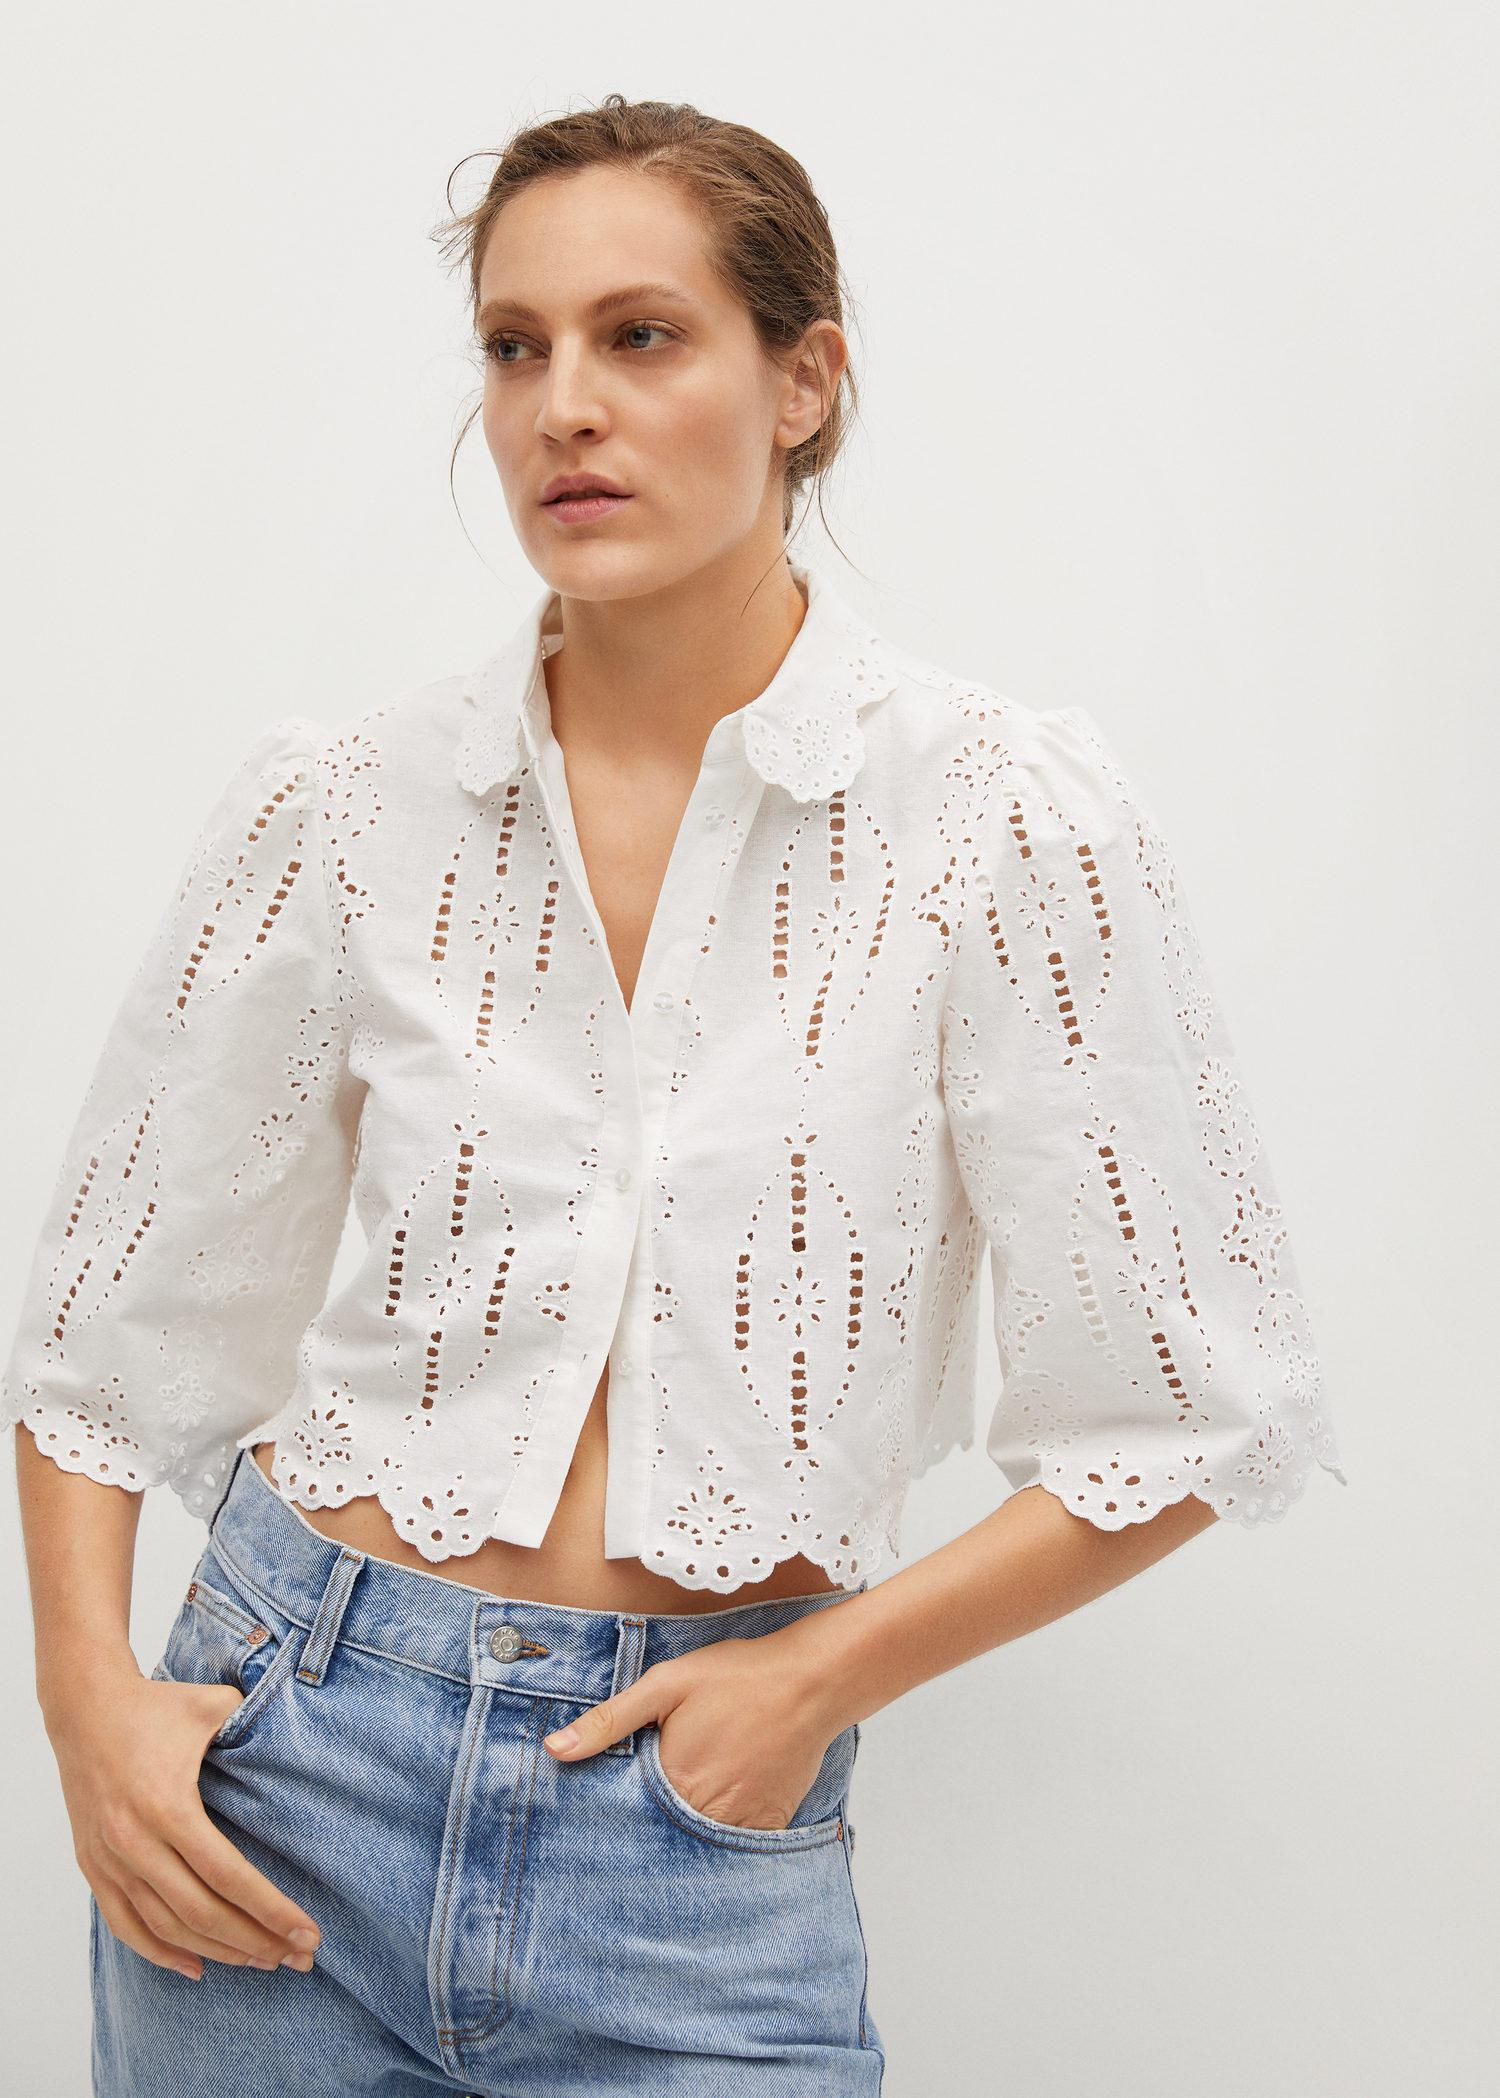 Swiss embroidery linen blouse